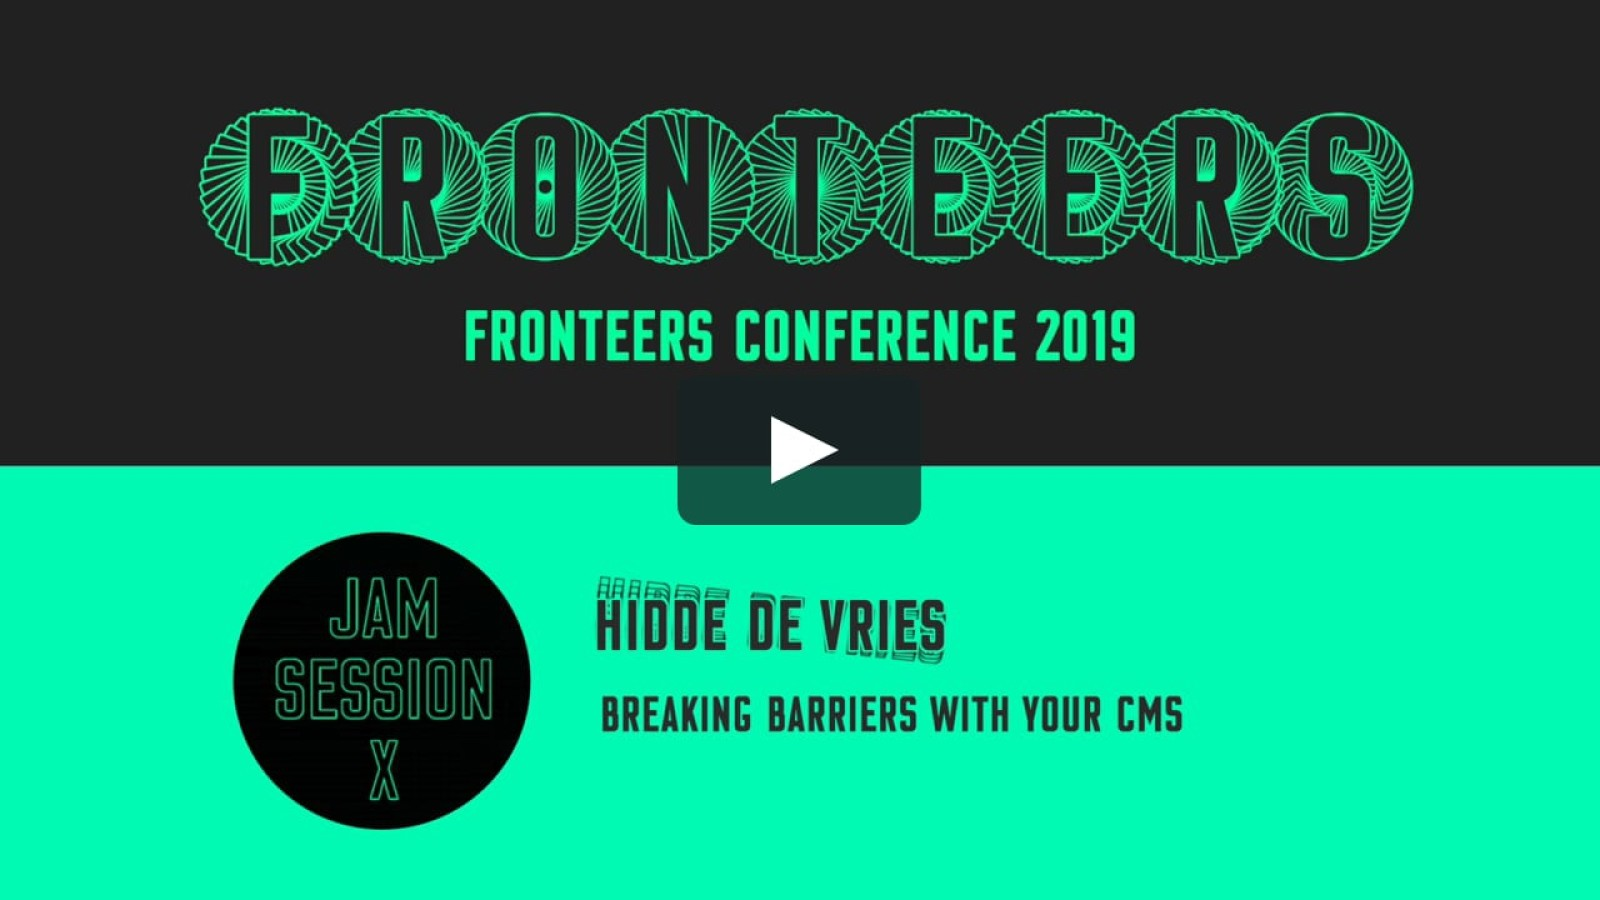 Breaking barriers with your CMS